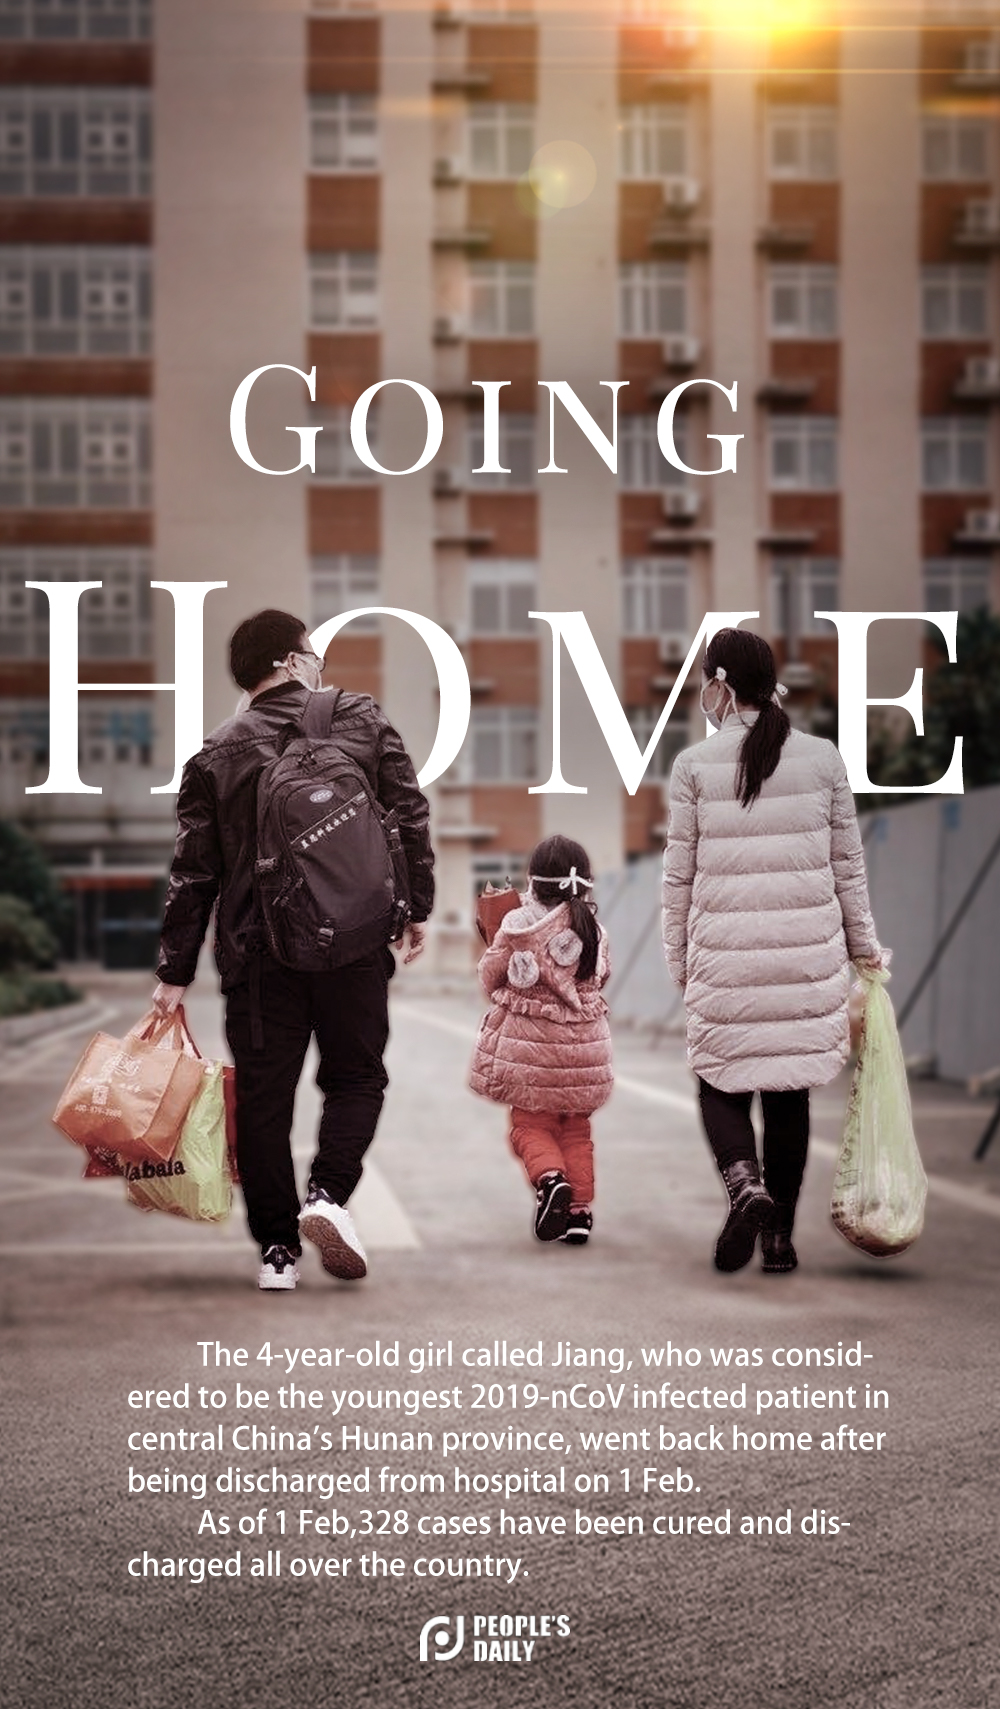 Poster: Going home